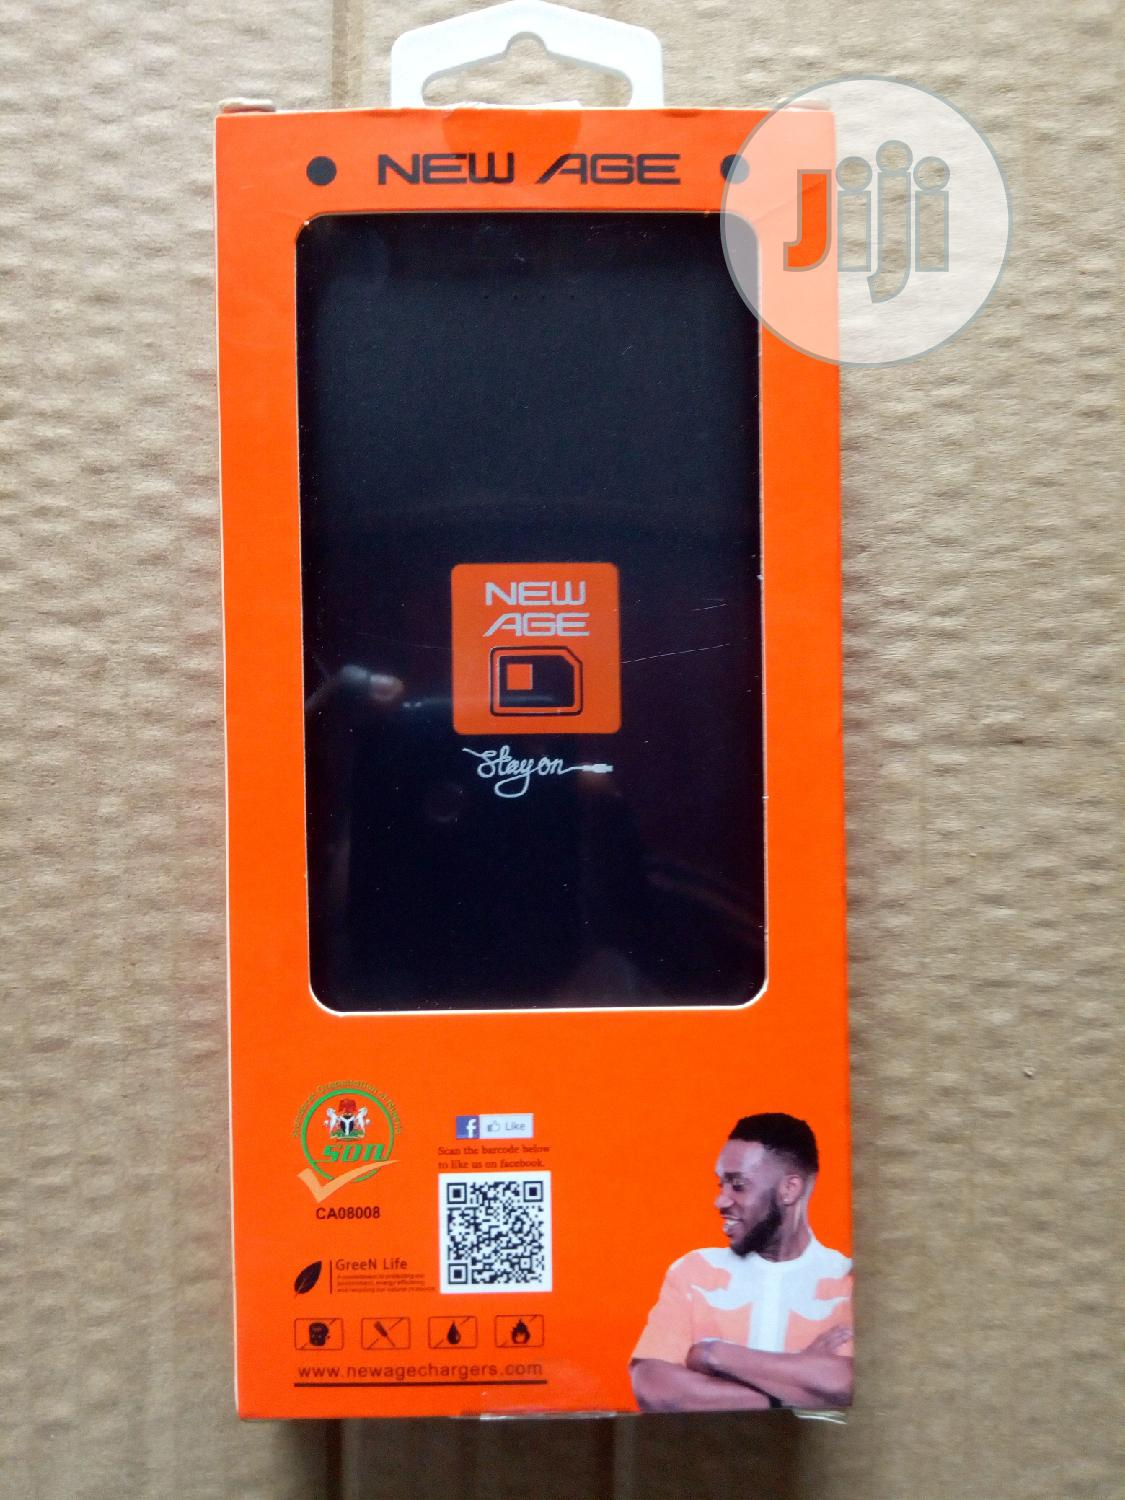 New Age Power Bank 12500mah | Accessories for Mobile Phones & Tablets for sale in Ibadan, Oyo State, Nigeria